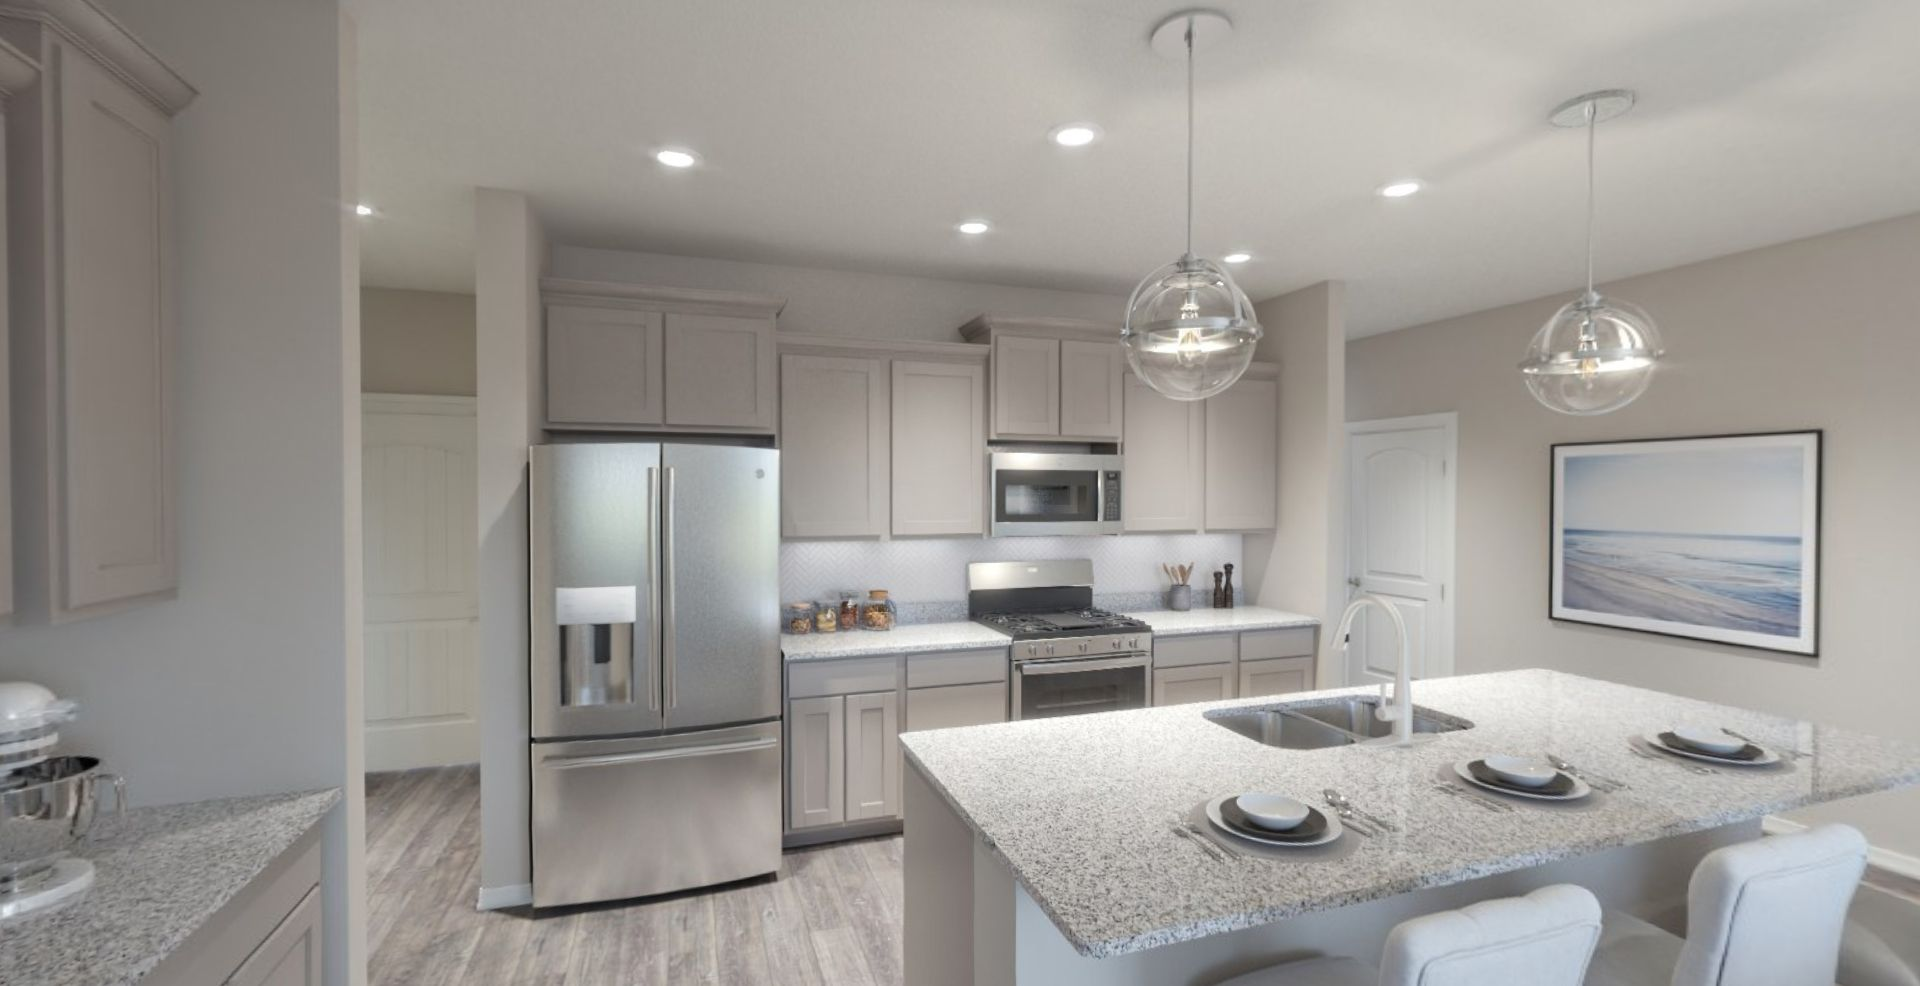 Kitchen featured in the Adagio By Olthof Homes in Indianapolis, IN